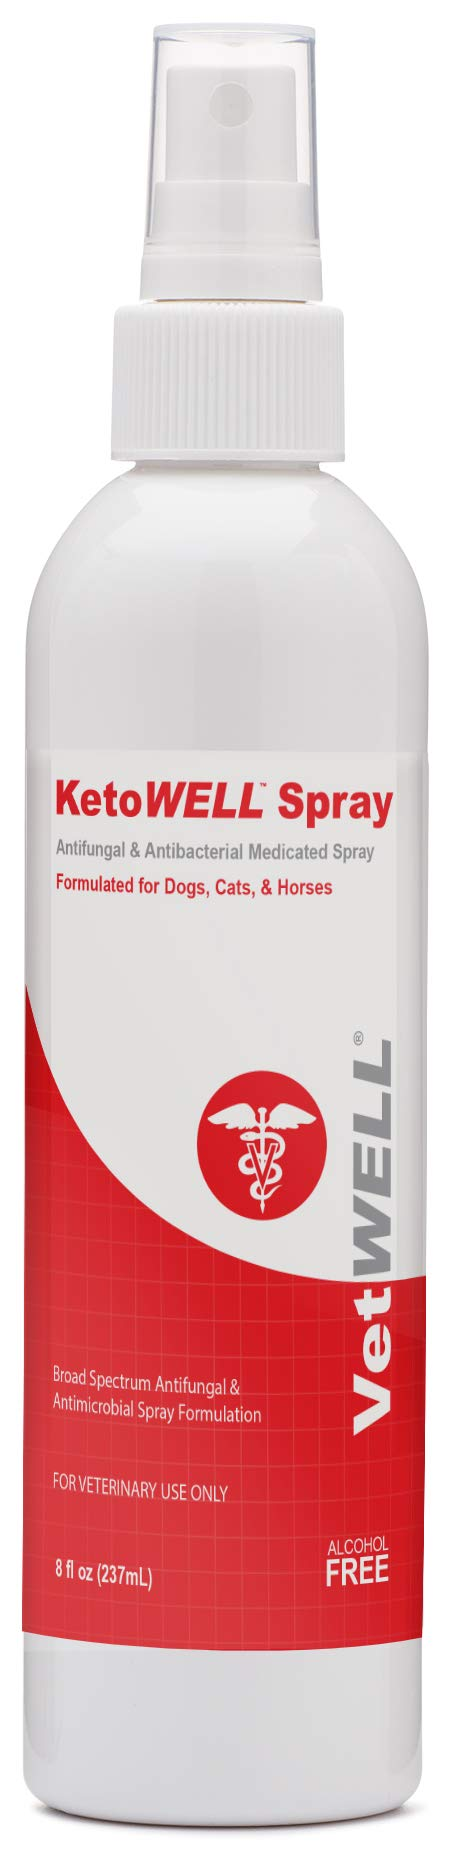 KetoWELL Chlorhexidine & Ketoconazole Antiseptic Medicated Spray for Dogs & Cats - Hot Spot Treatment, Ringworm, Yeast, Fungal Infections, Acne - Aloe & Vitamin E - 8 oz by VetWELL